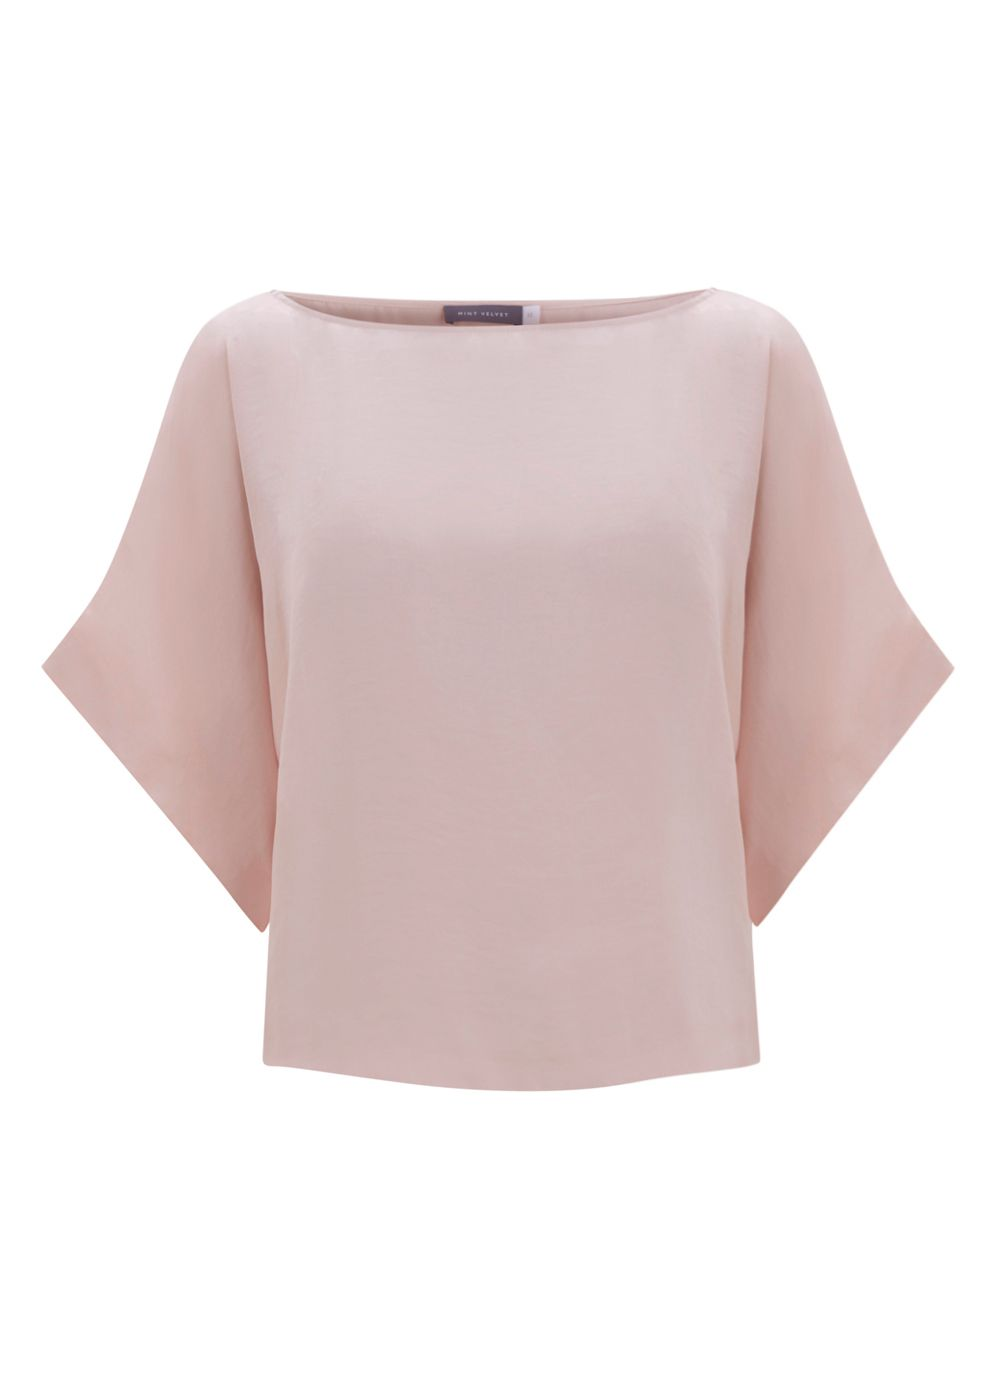 Square cut top